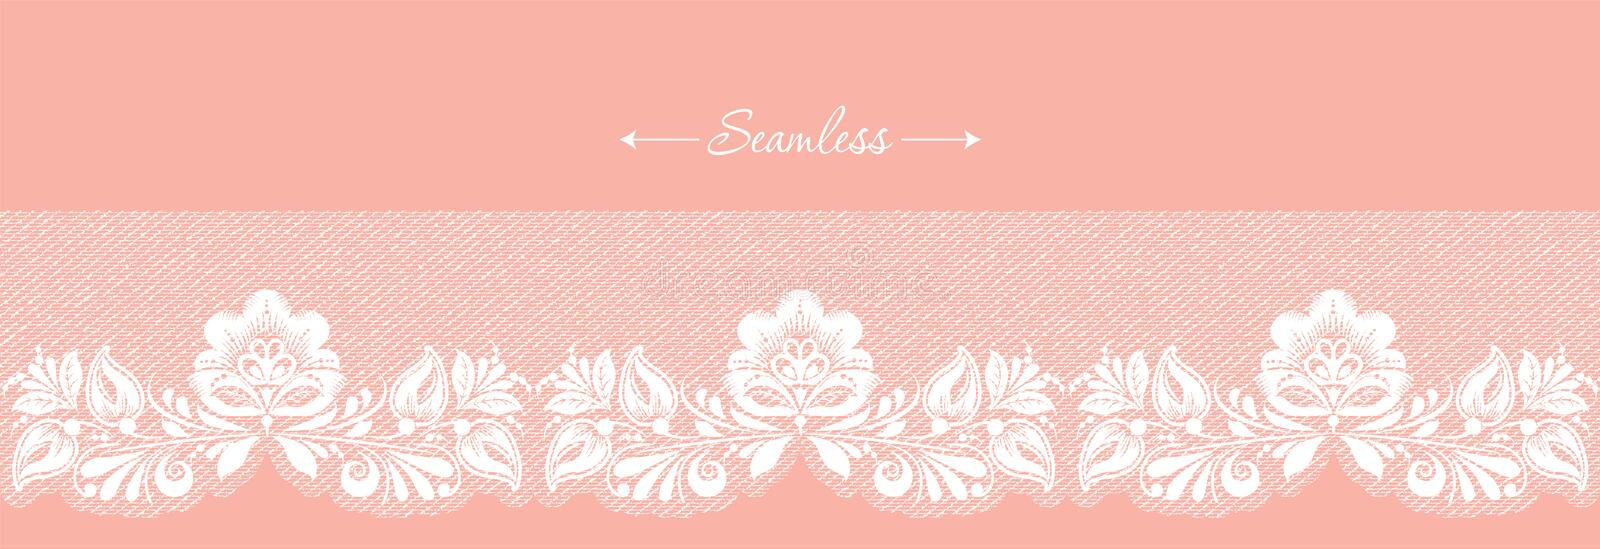 Vintage coral floral seamless lace trim header, great design for any purposes. Decorative ornate banner with flower. royalty free stock photo